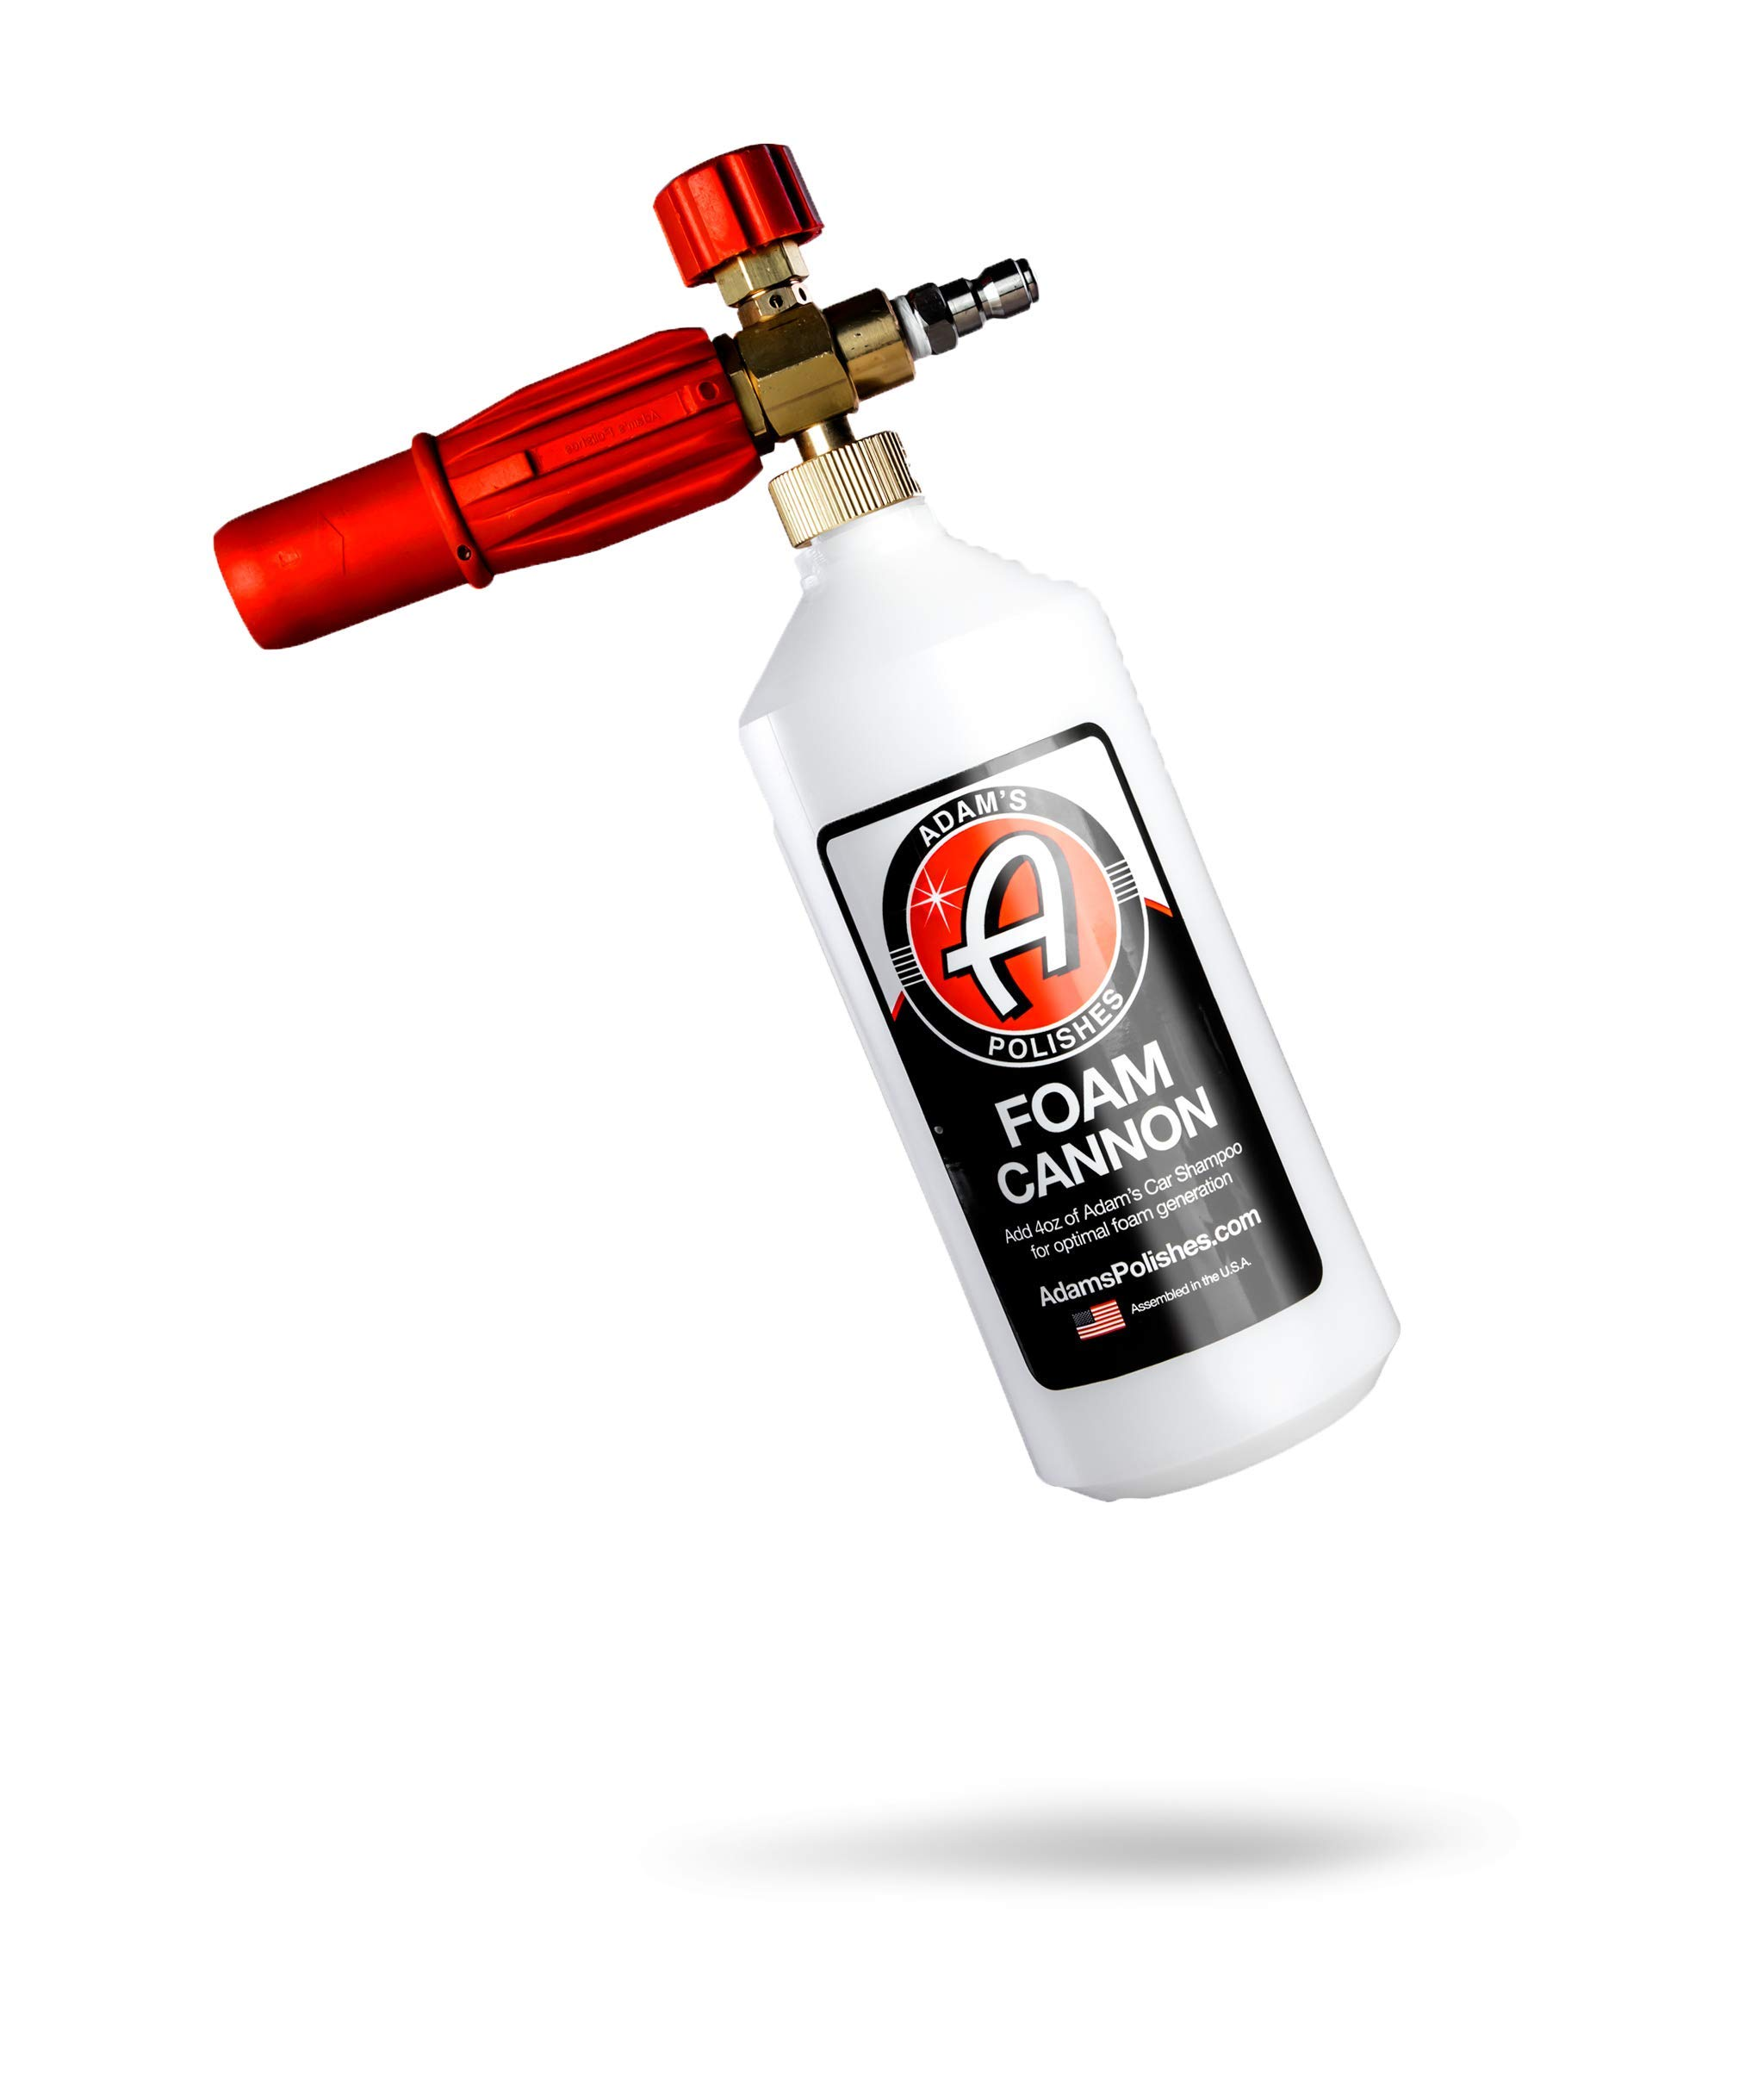 Adam's Foam Cannon - Sudsy Car Wash & Car Detailing Pressure Washer Tool | Use W/Car Wash Soap & Car Cleaning Wash Brush | Build Car Cleaning Kit W/Car Wax Clay Bar Ceramic Coating Wheel Cleaner